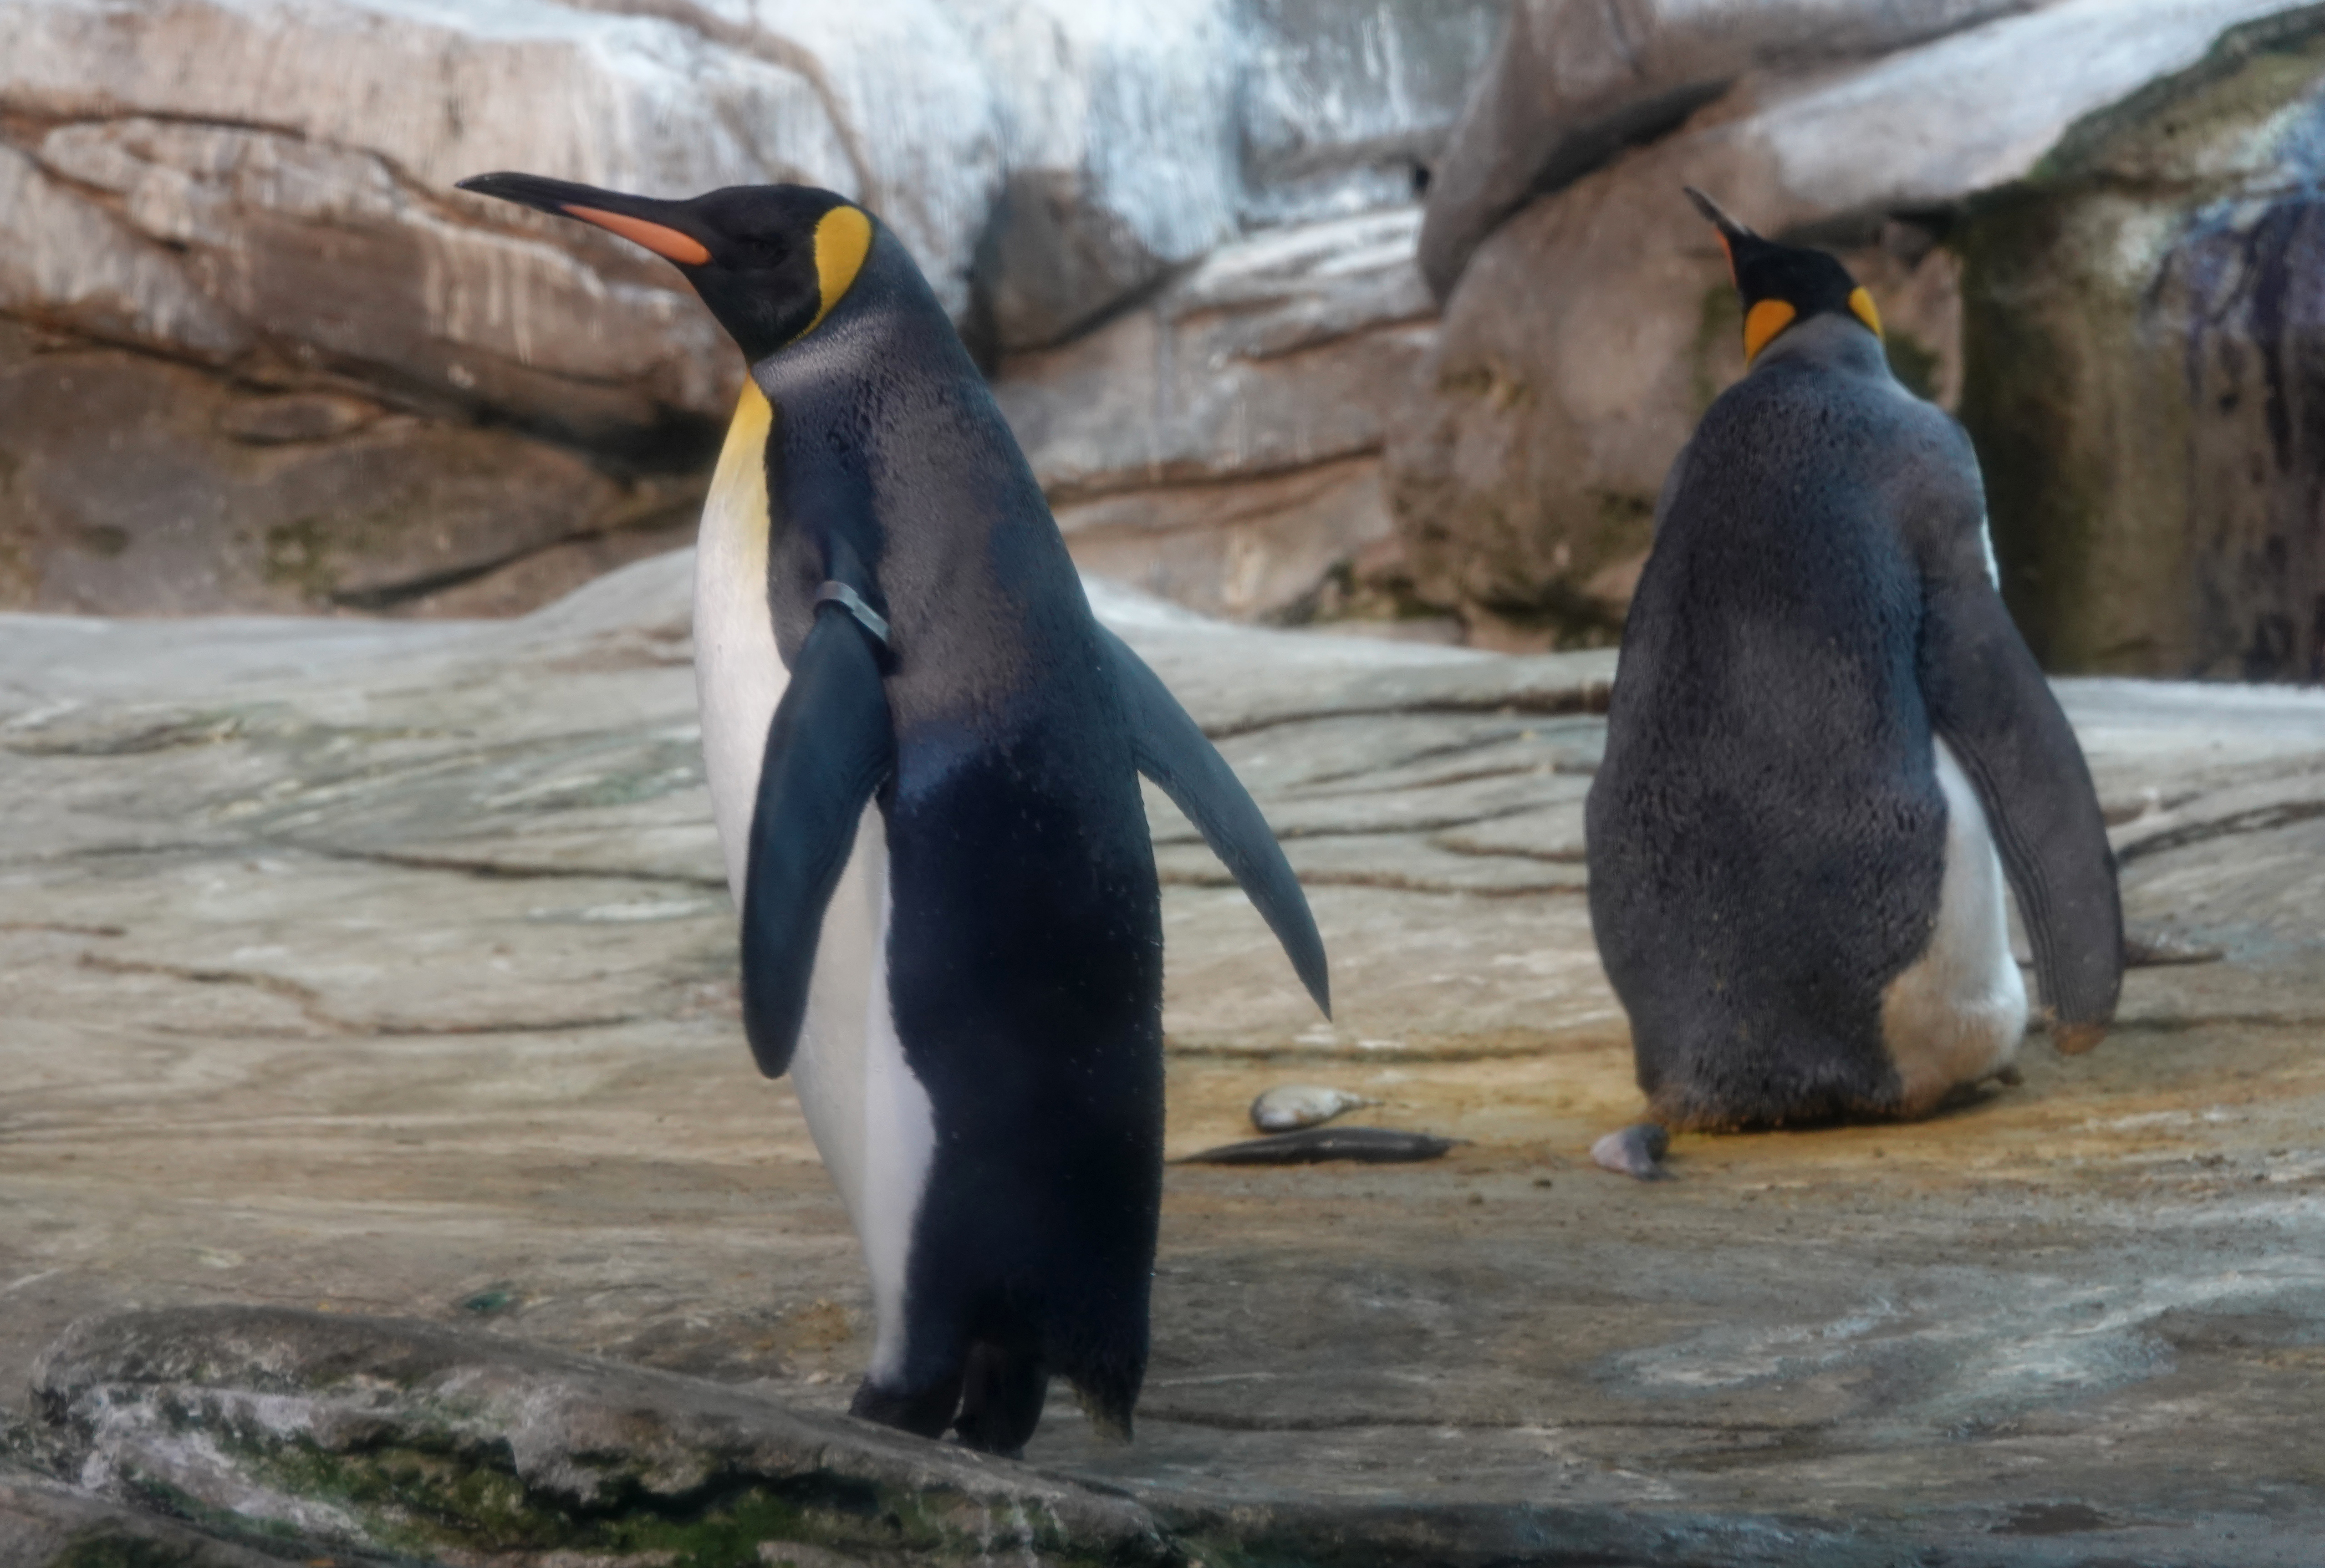 A Same-Sex Penguin Couple Just Adopted an Abandoned Egg at a Berlin Zoo